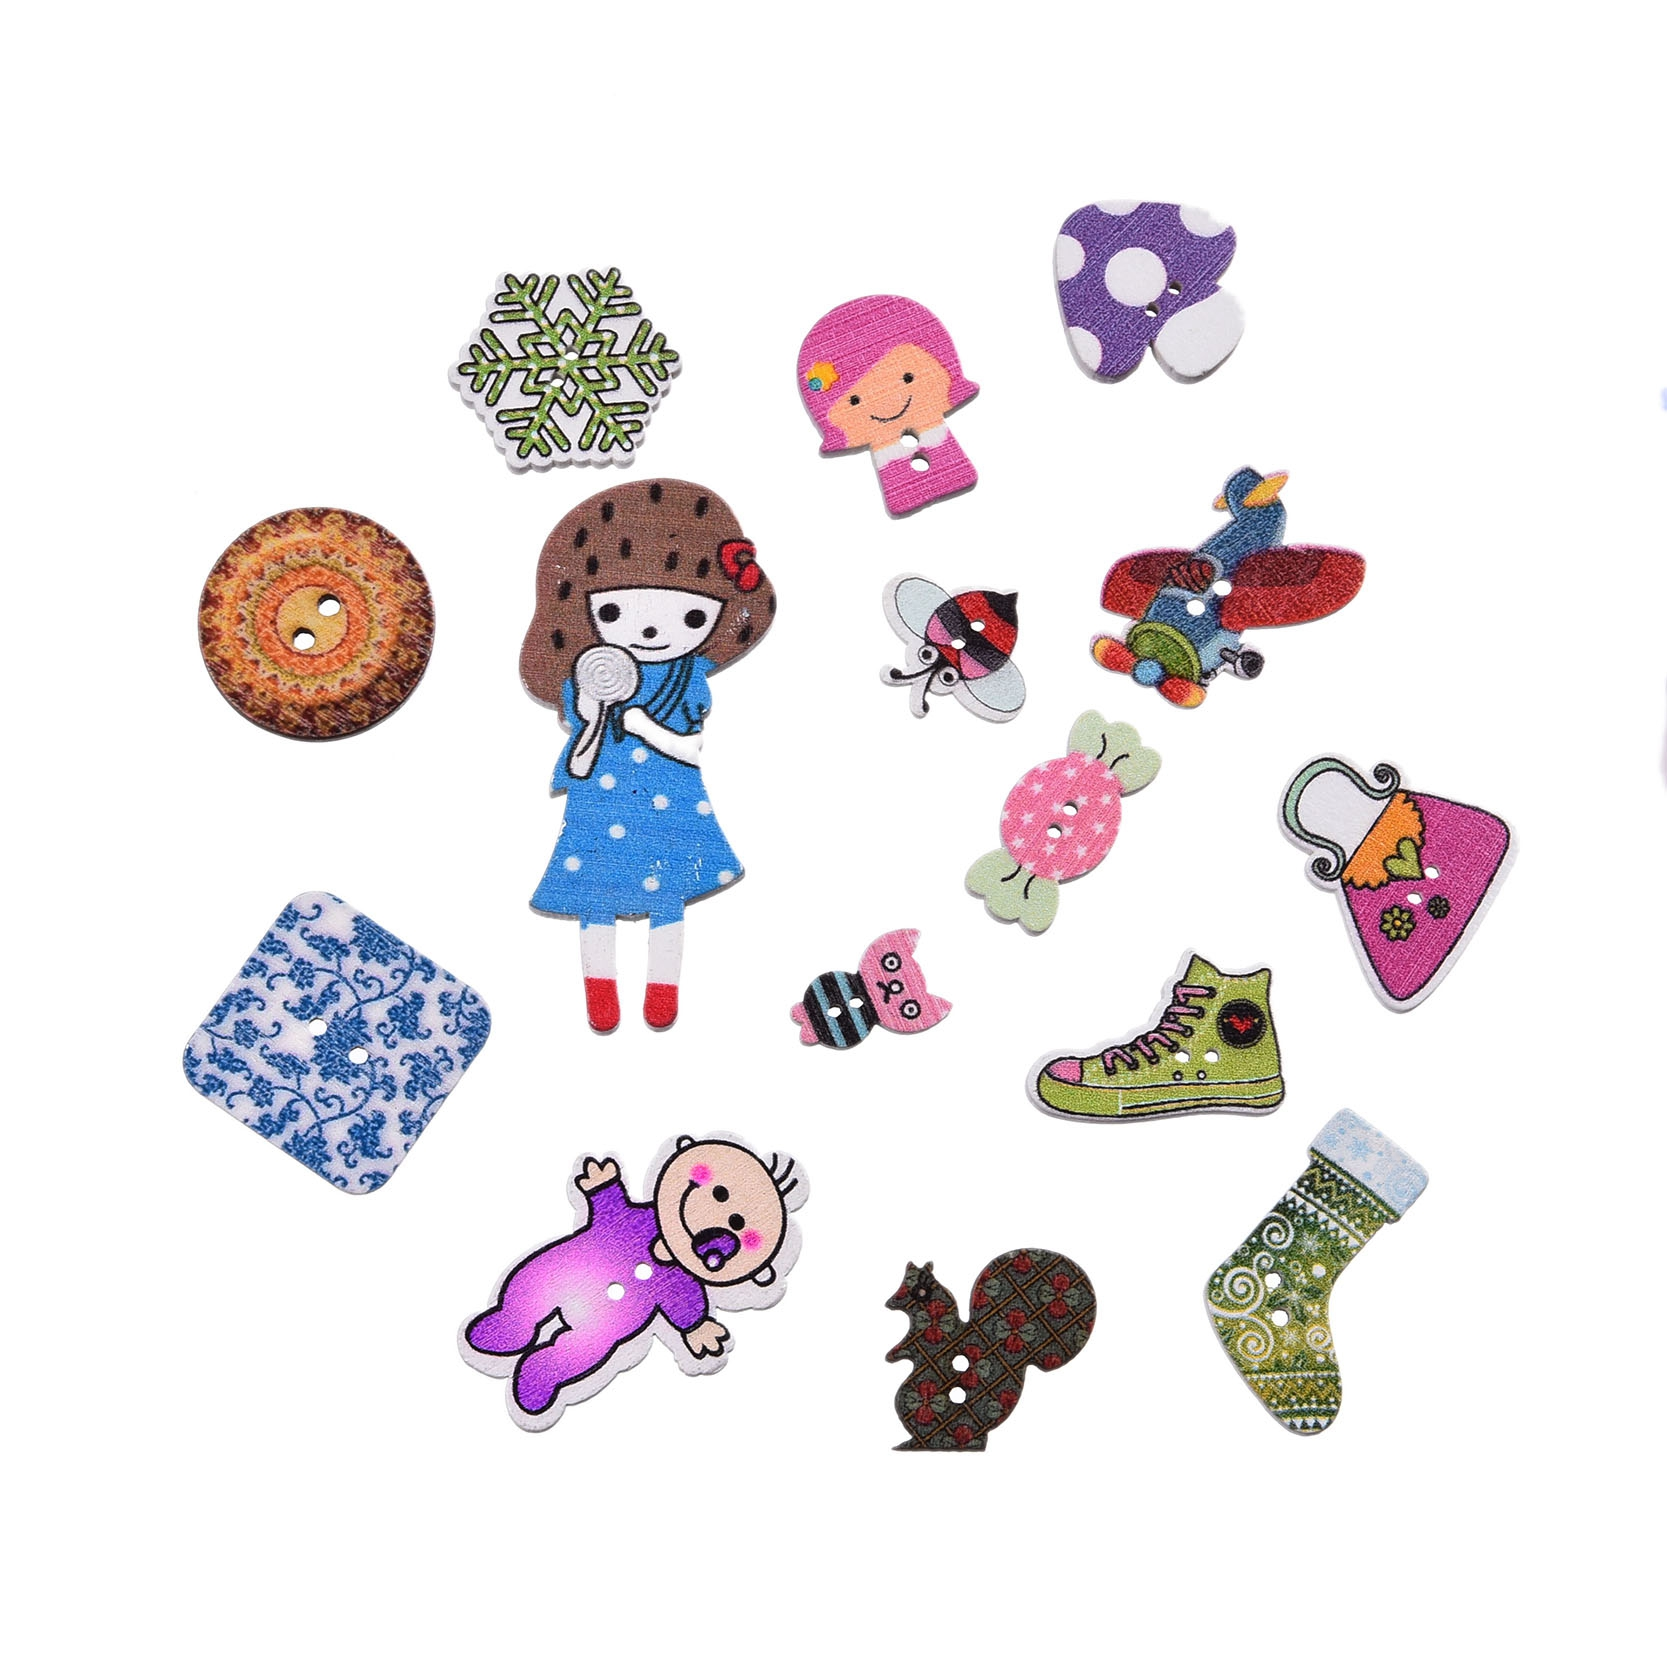 Sewing Accessories Buttons Flatback Cabochon Scrapbooking Wood Decorative Buttons Crafts 50Pcs Multicolor Mixed Wooden Button(China (Mainland))